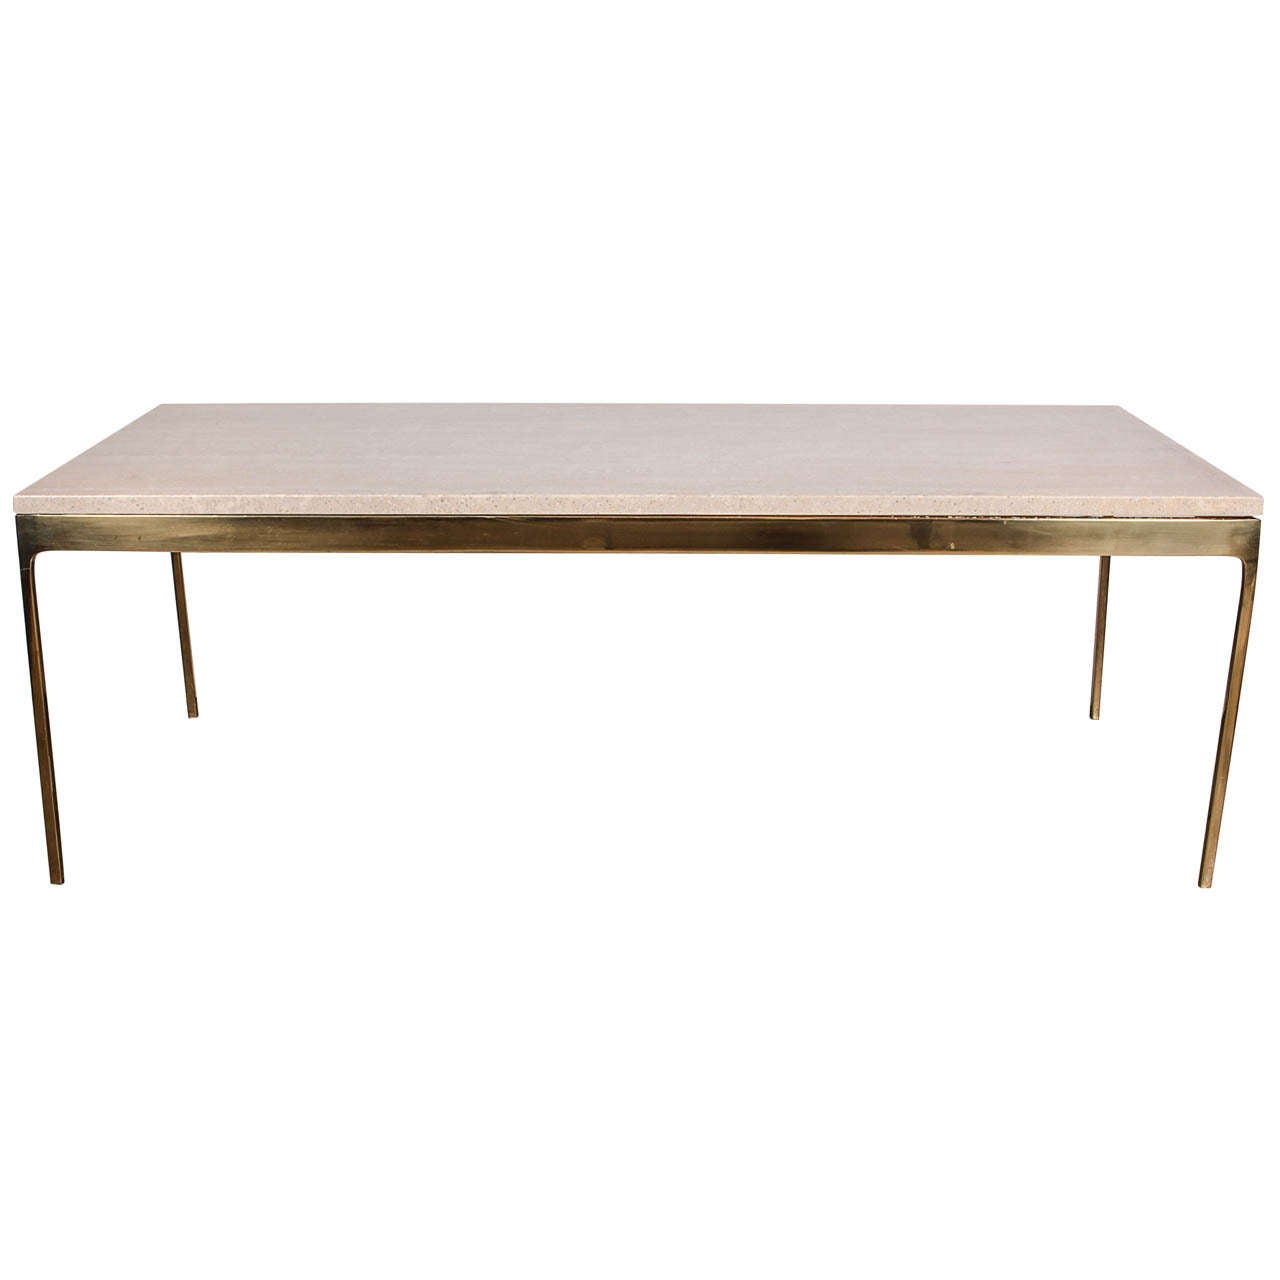 Brass And Travertine Coffee Table By Nico Zographos At 1stdibs